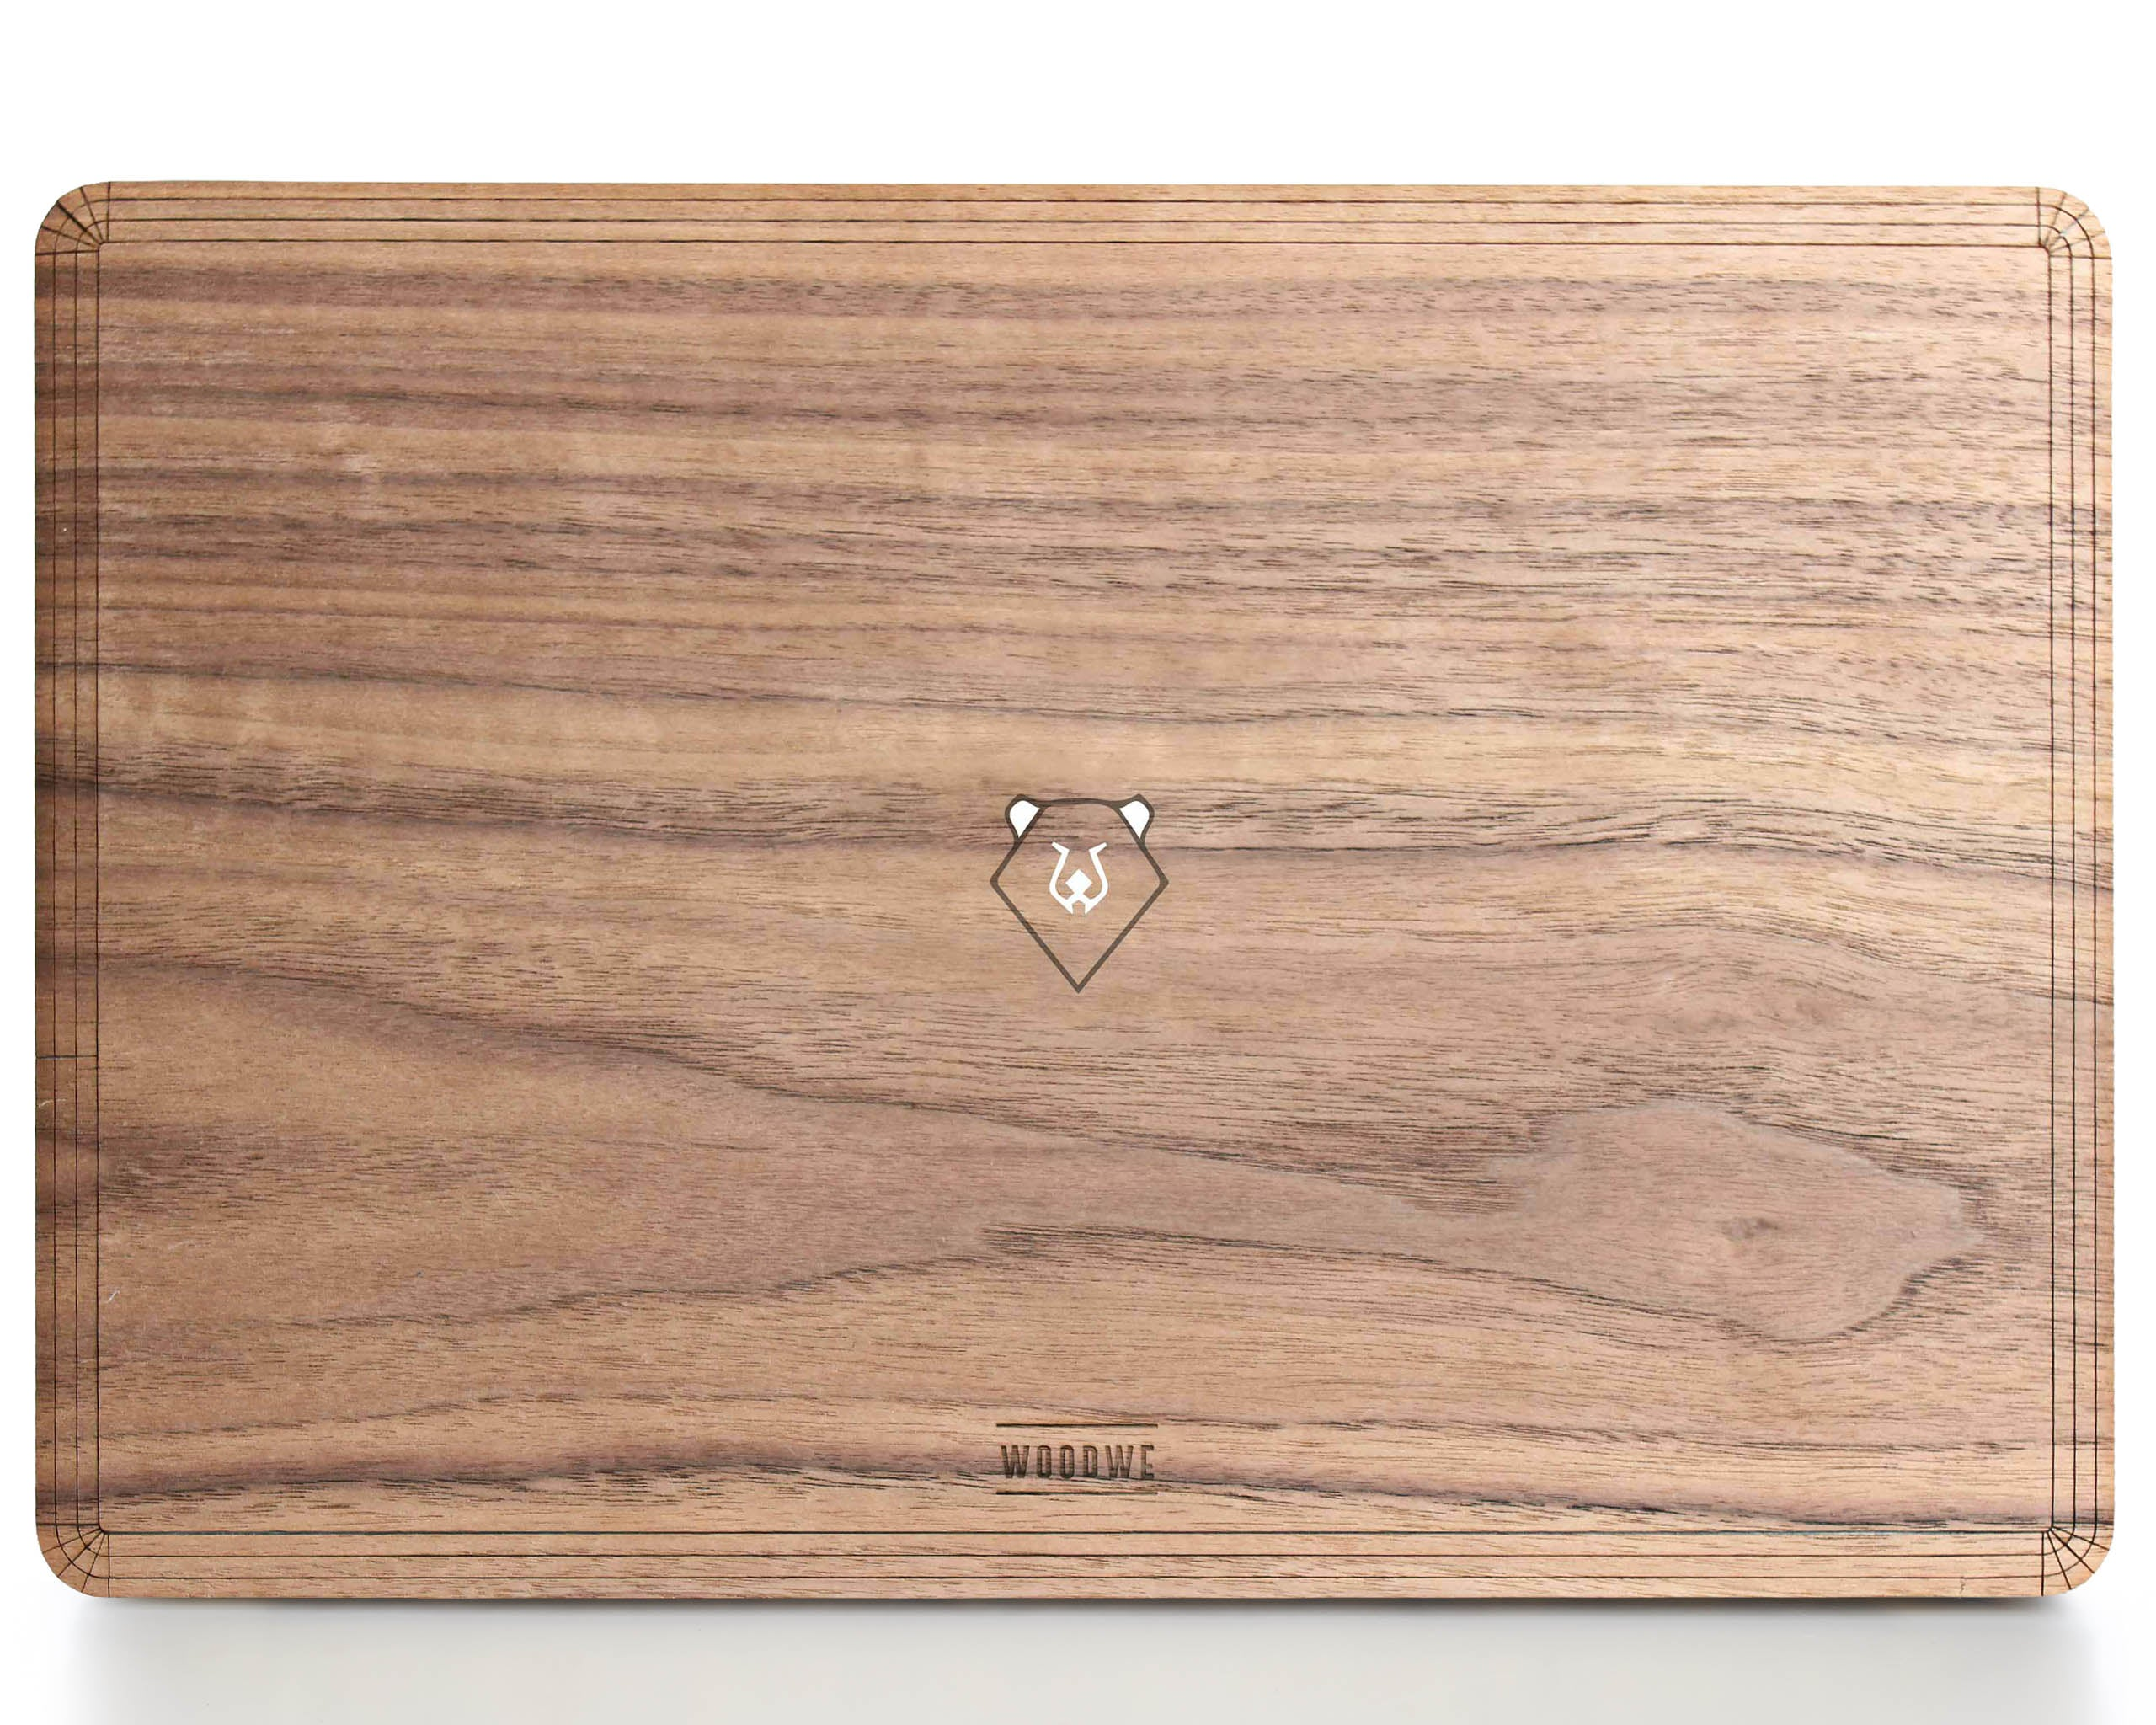 Bear in the Woods - Minimal - Macbook Wood Cover - Walnut